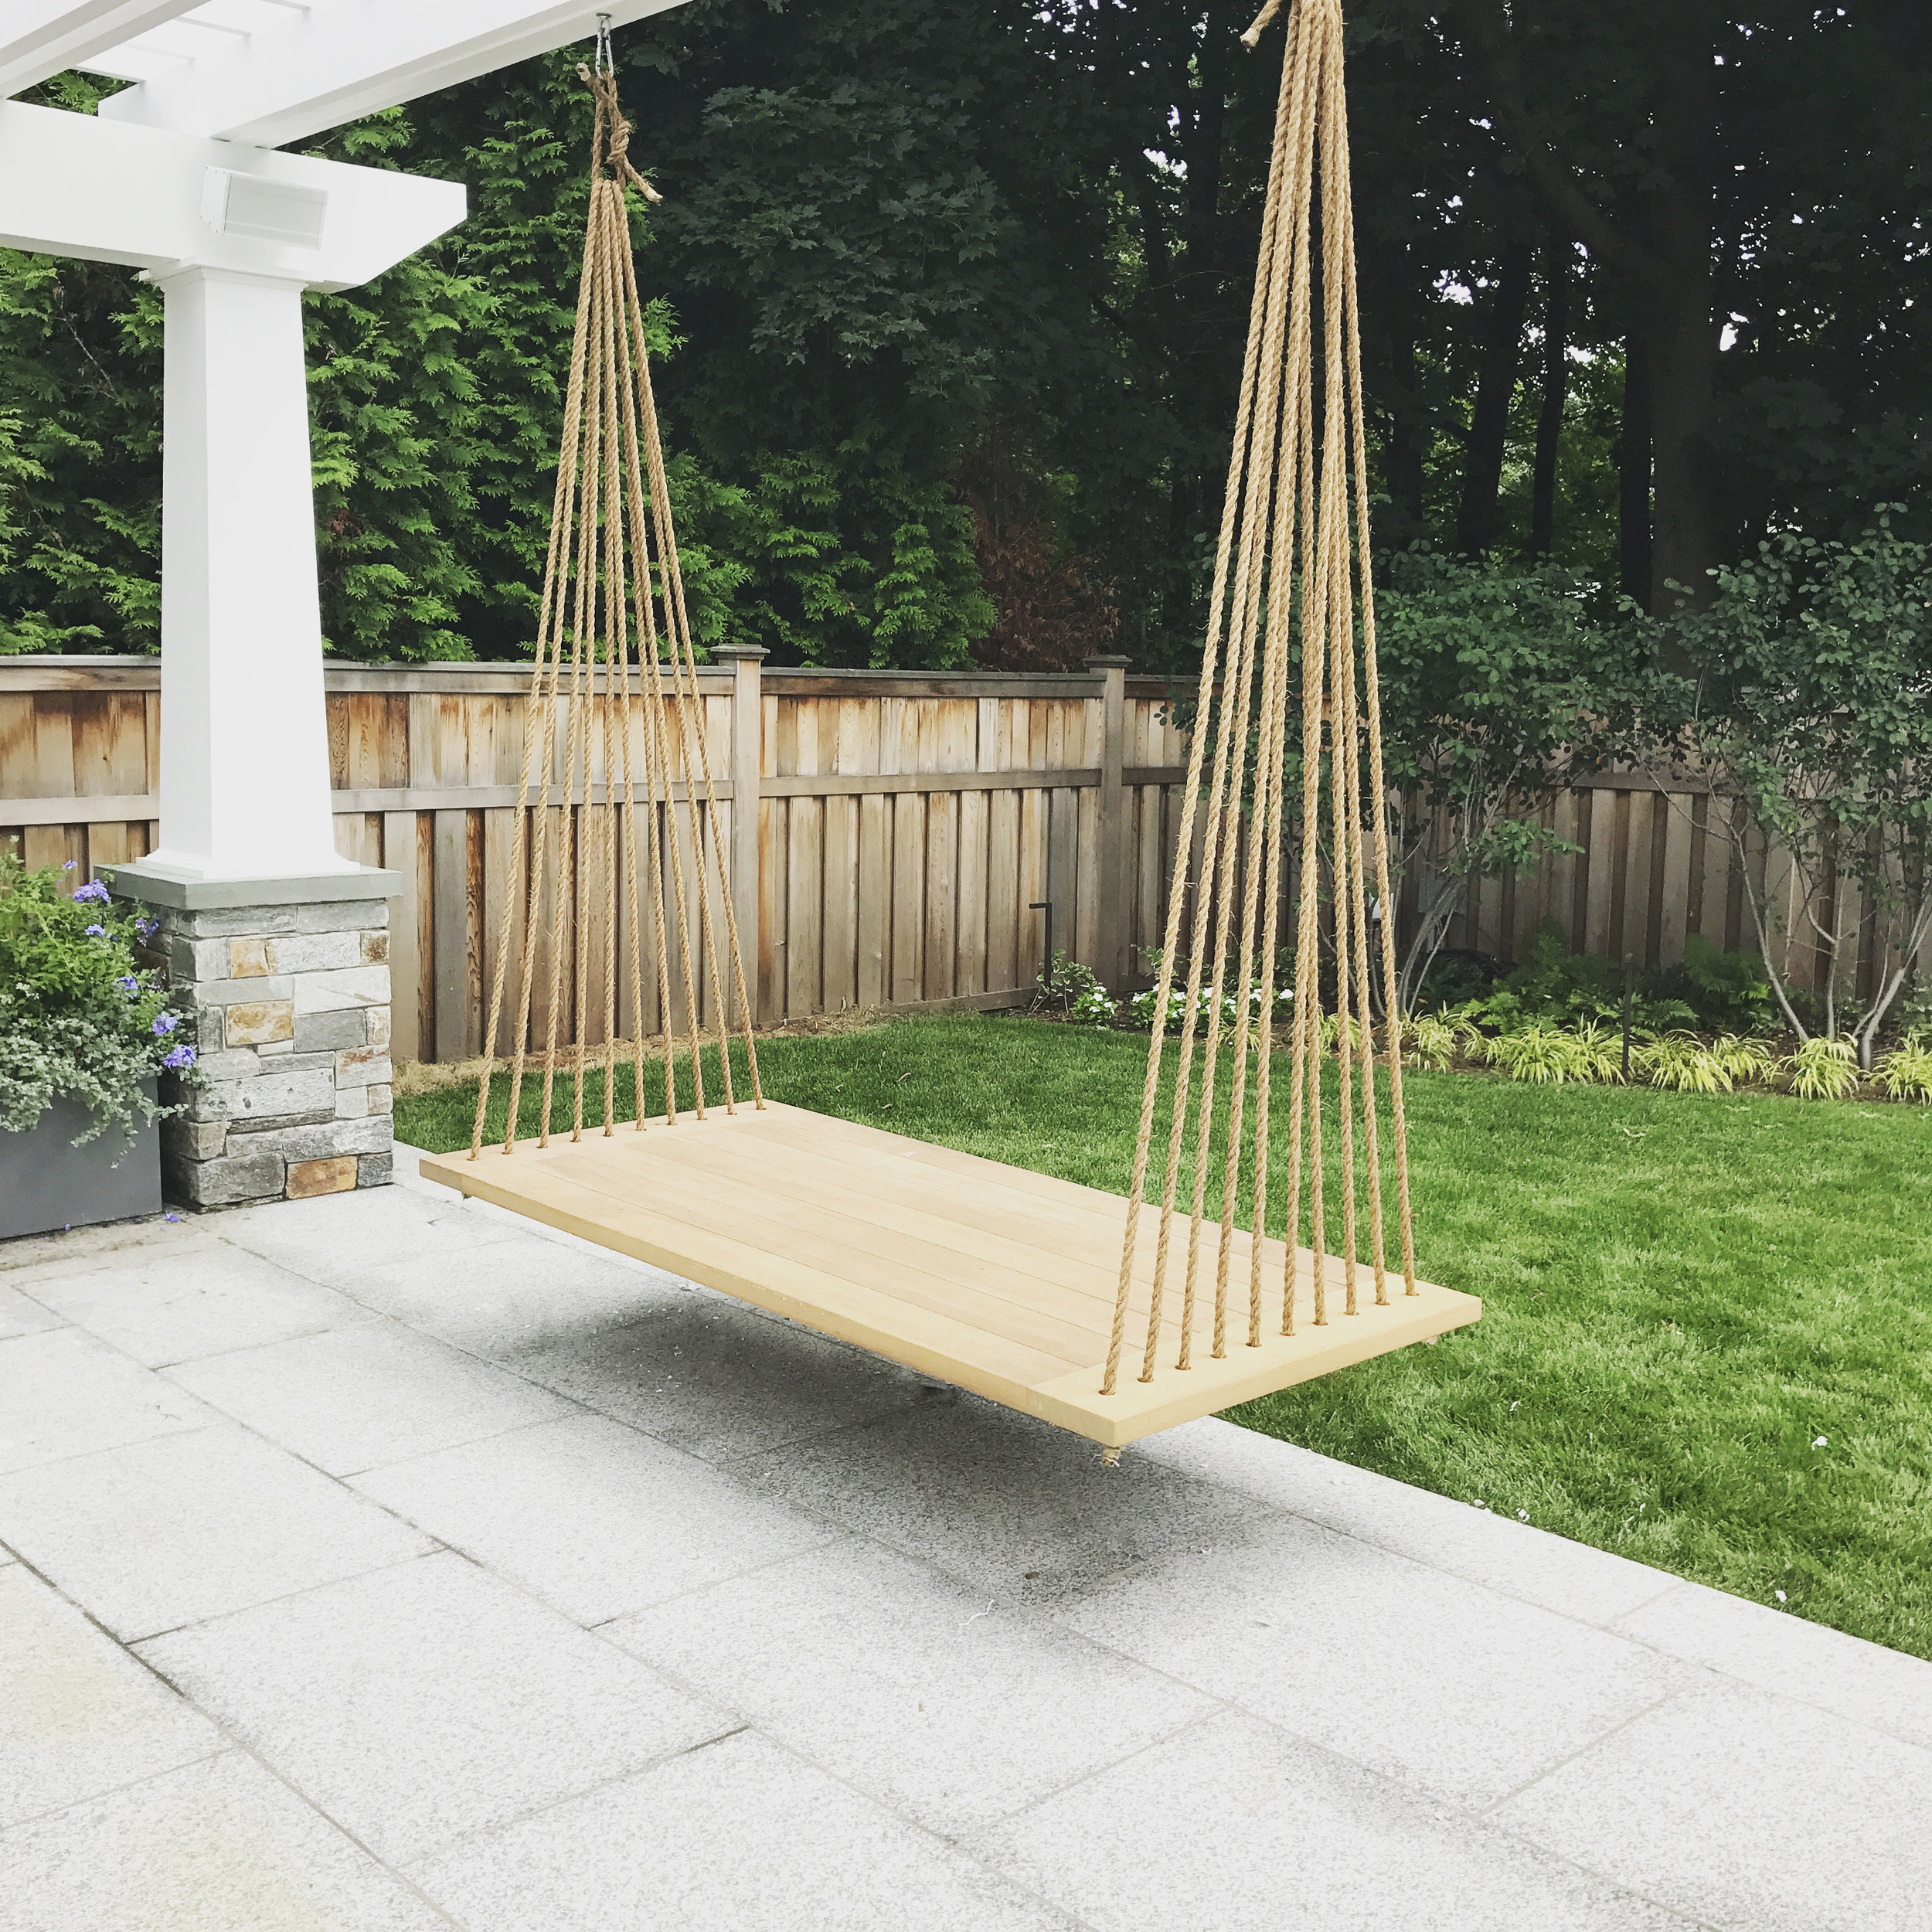 An outdoor swinging bed made out of Iroko Wood.